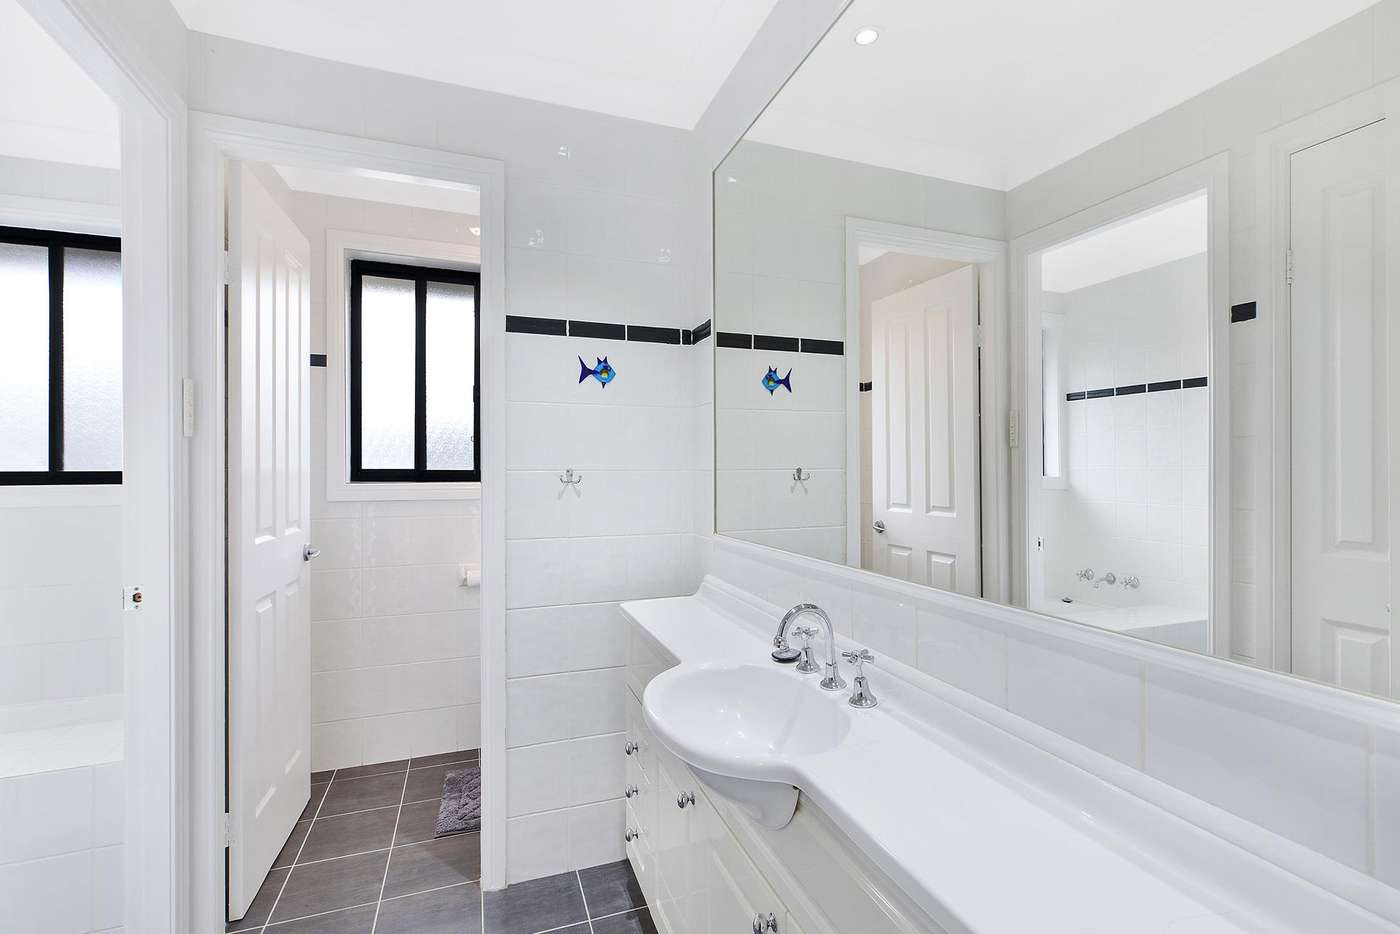 Sixth view of Homely house listing, 99 Rosella Road, Empire Bay NSW 2257